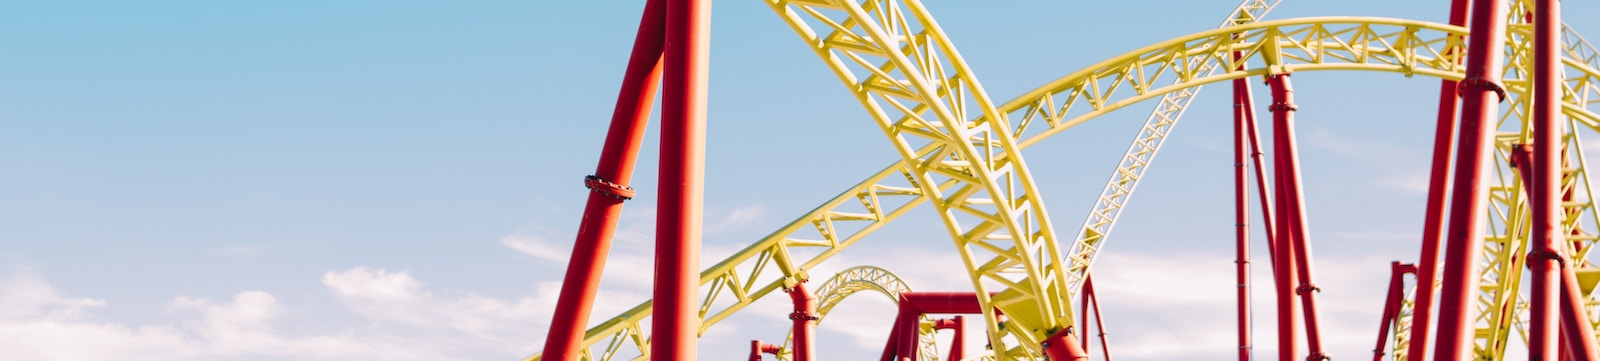 Roller coaster at a theme park with yellow tracks and red supports.